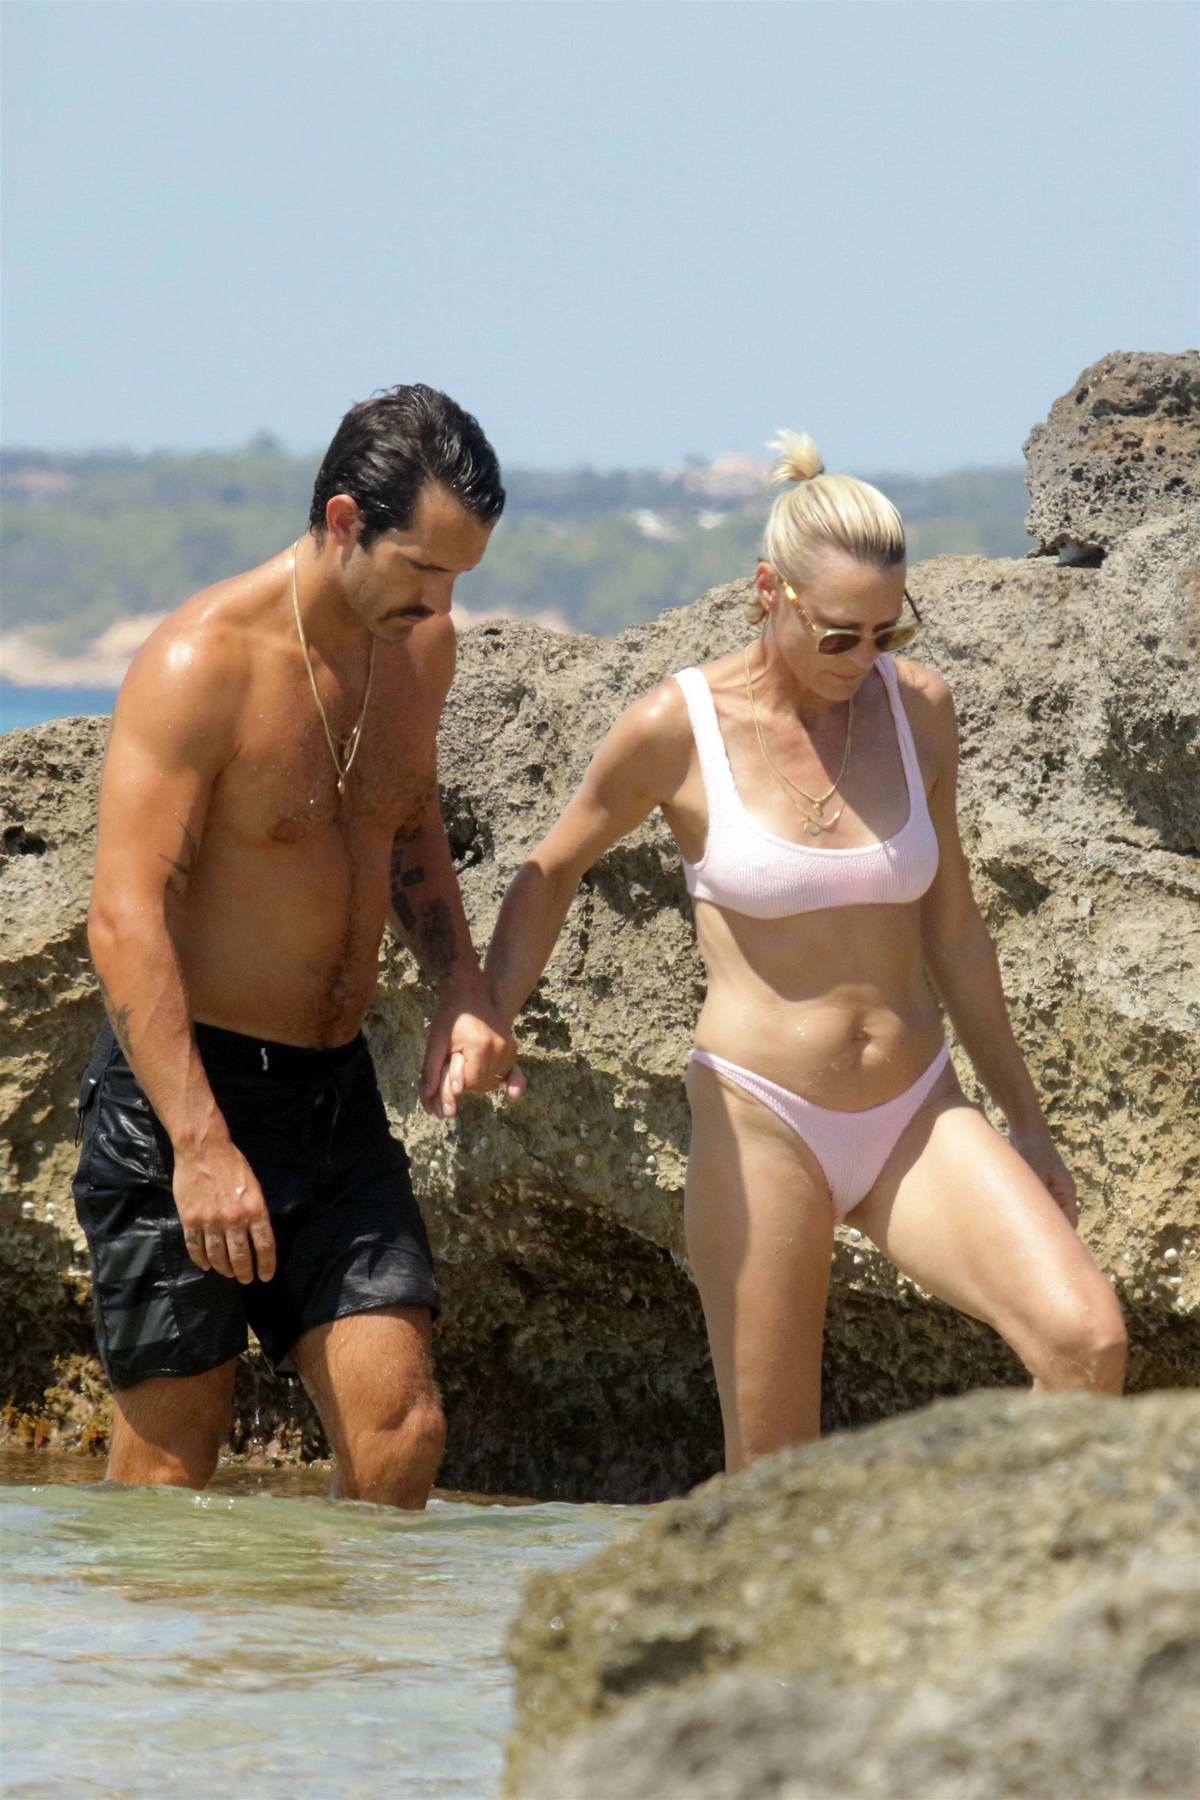 Robin Wright spotted in a light pink bikini as she gets in some PDA with husband Clement Giraudet while at the beach in Formentera, Spain